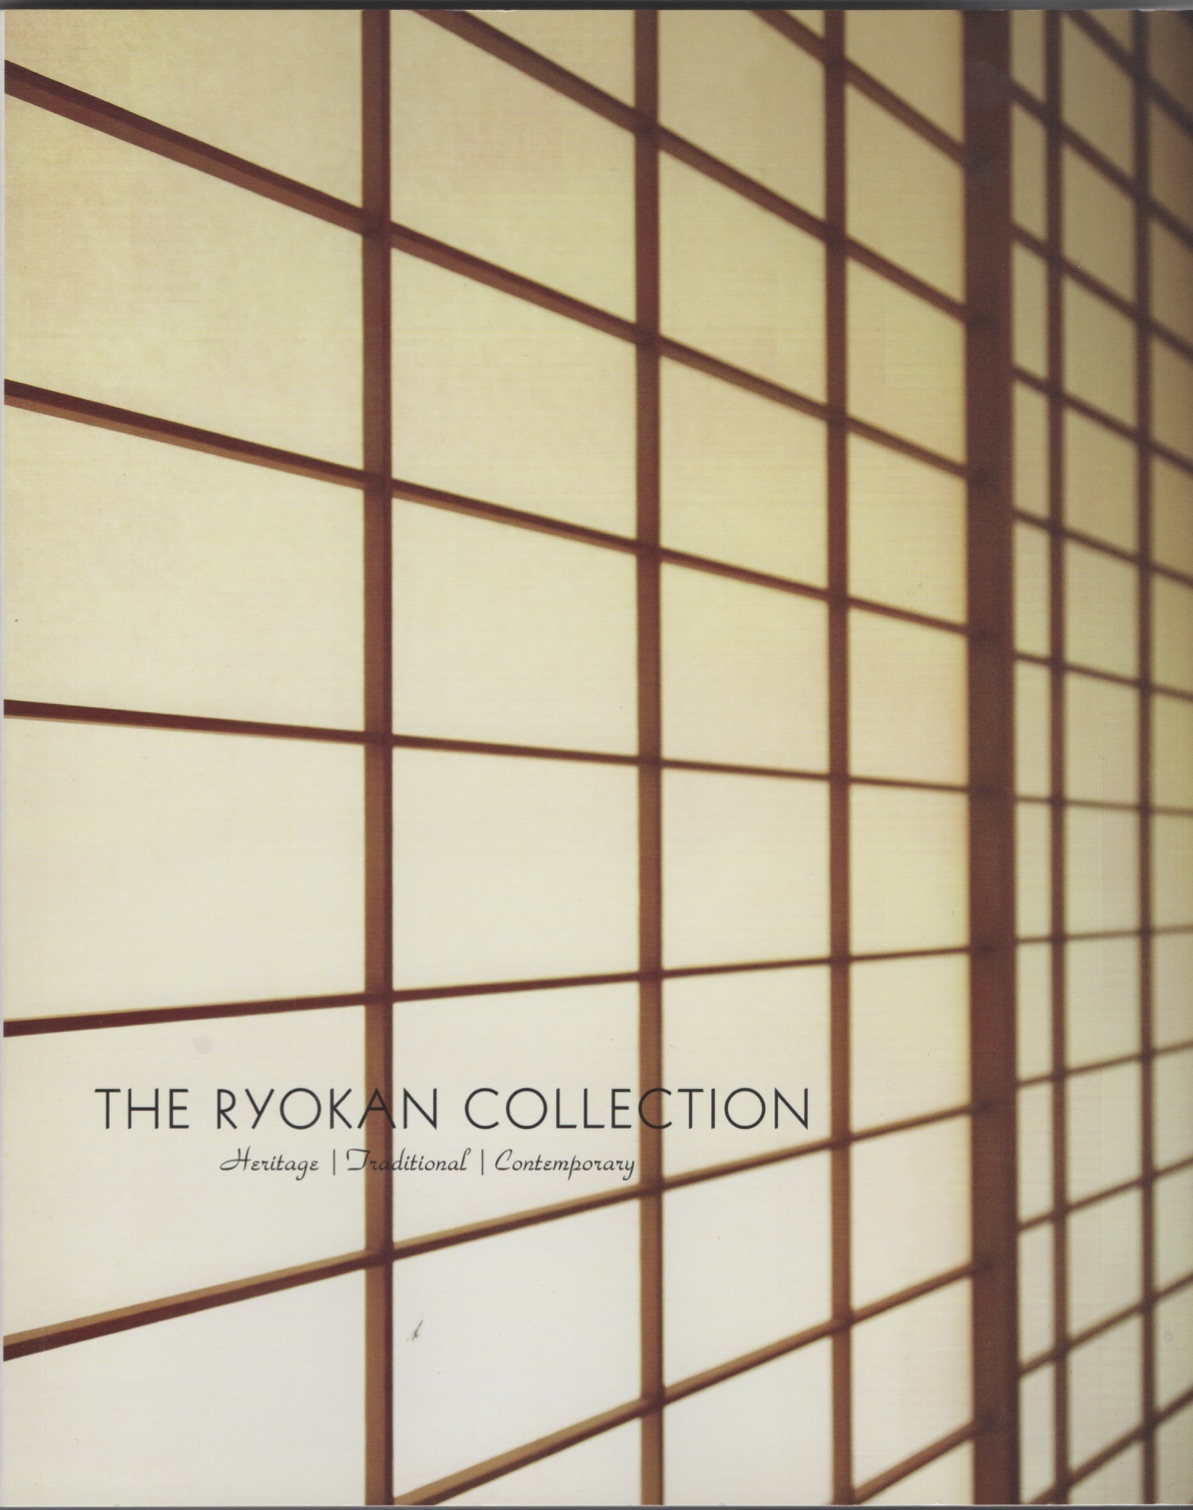 Ryokan Collection